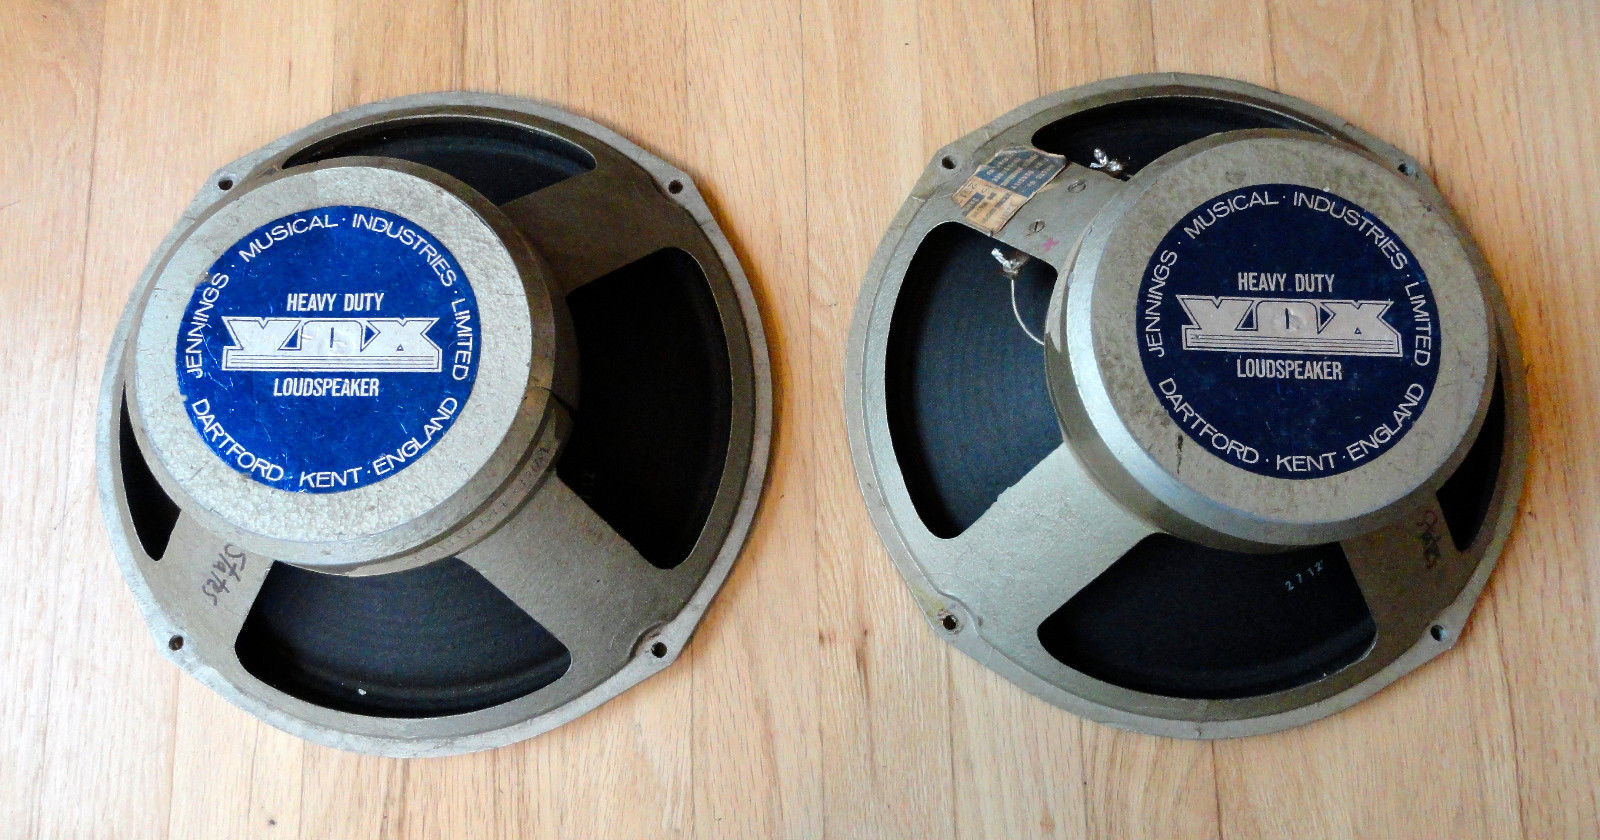 Vox heavy duty speaker labels